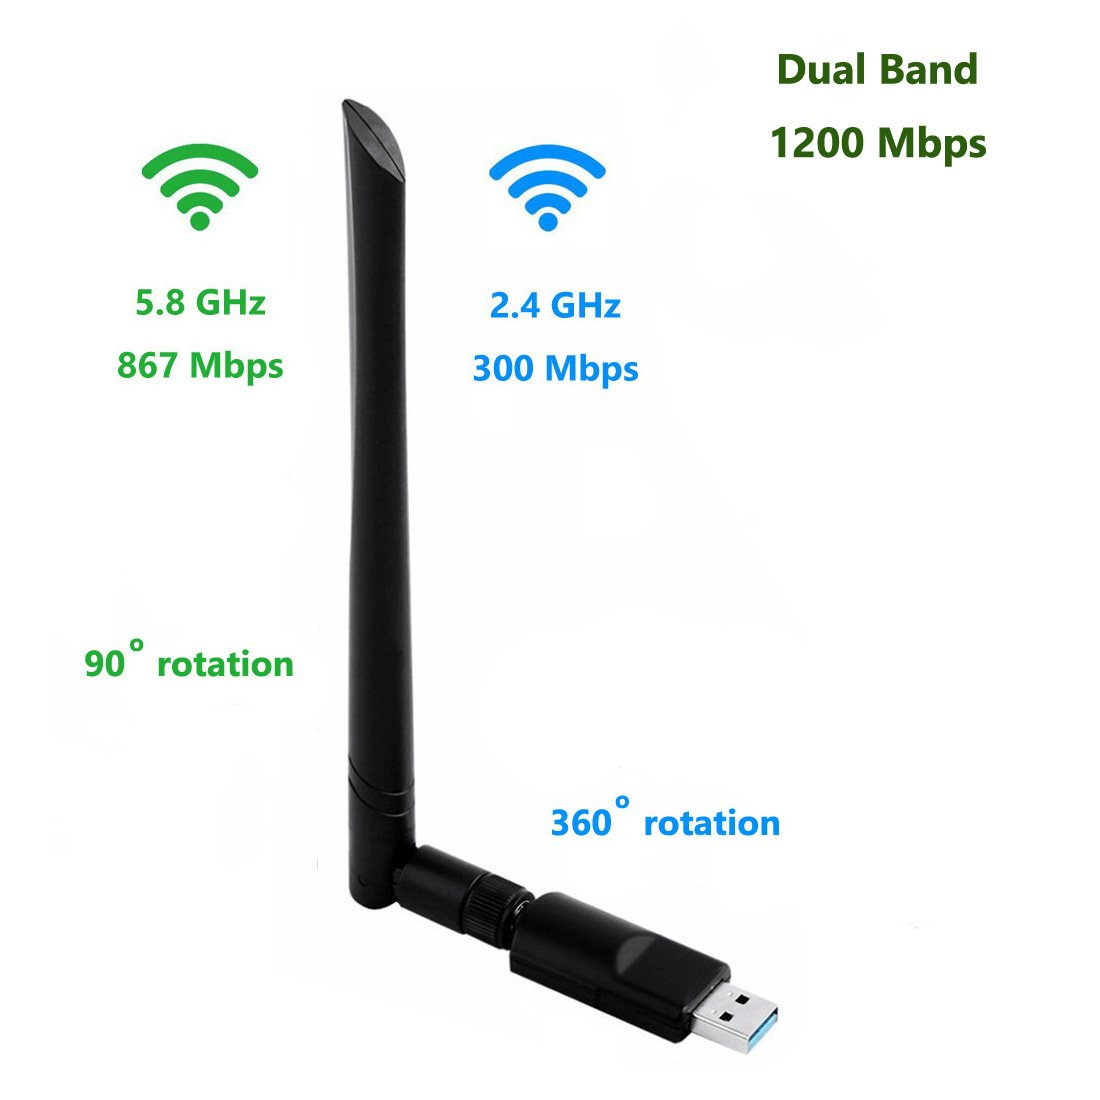 Connecting 1200 Mbps USB WiFi Network Adapter Chipset with 5 dBi Antenna  Dual Band AC1200 WiFi Dongle IEEE 802 11 a/b/g/AC Support, Windows 10 Mac